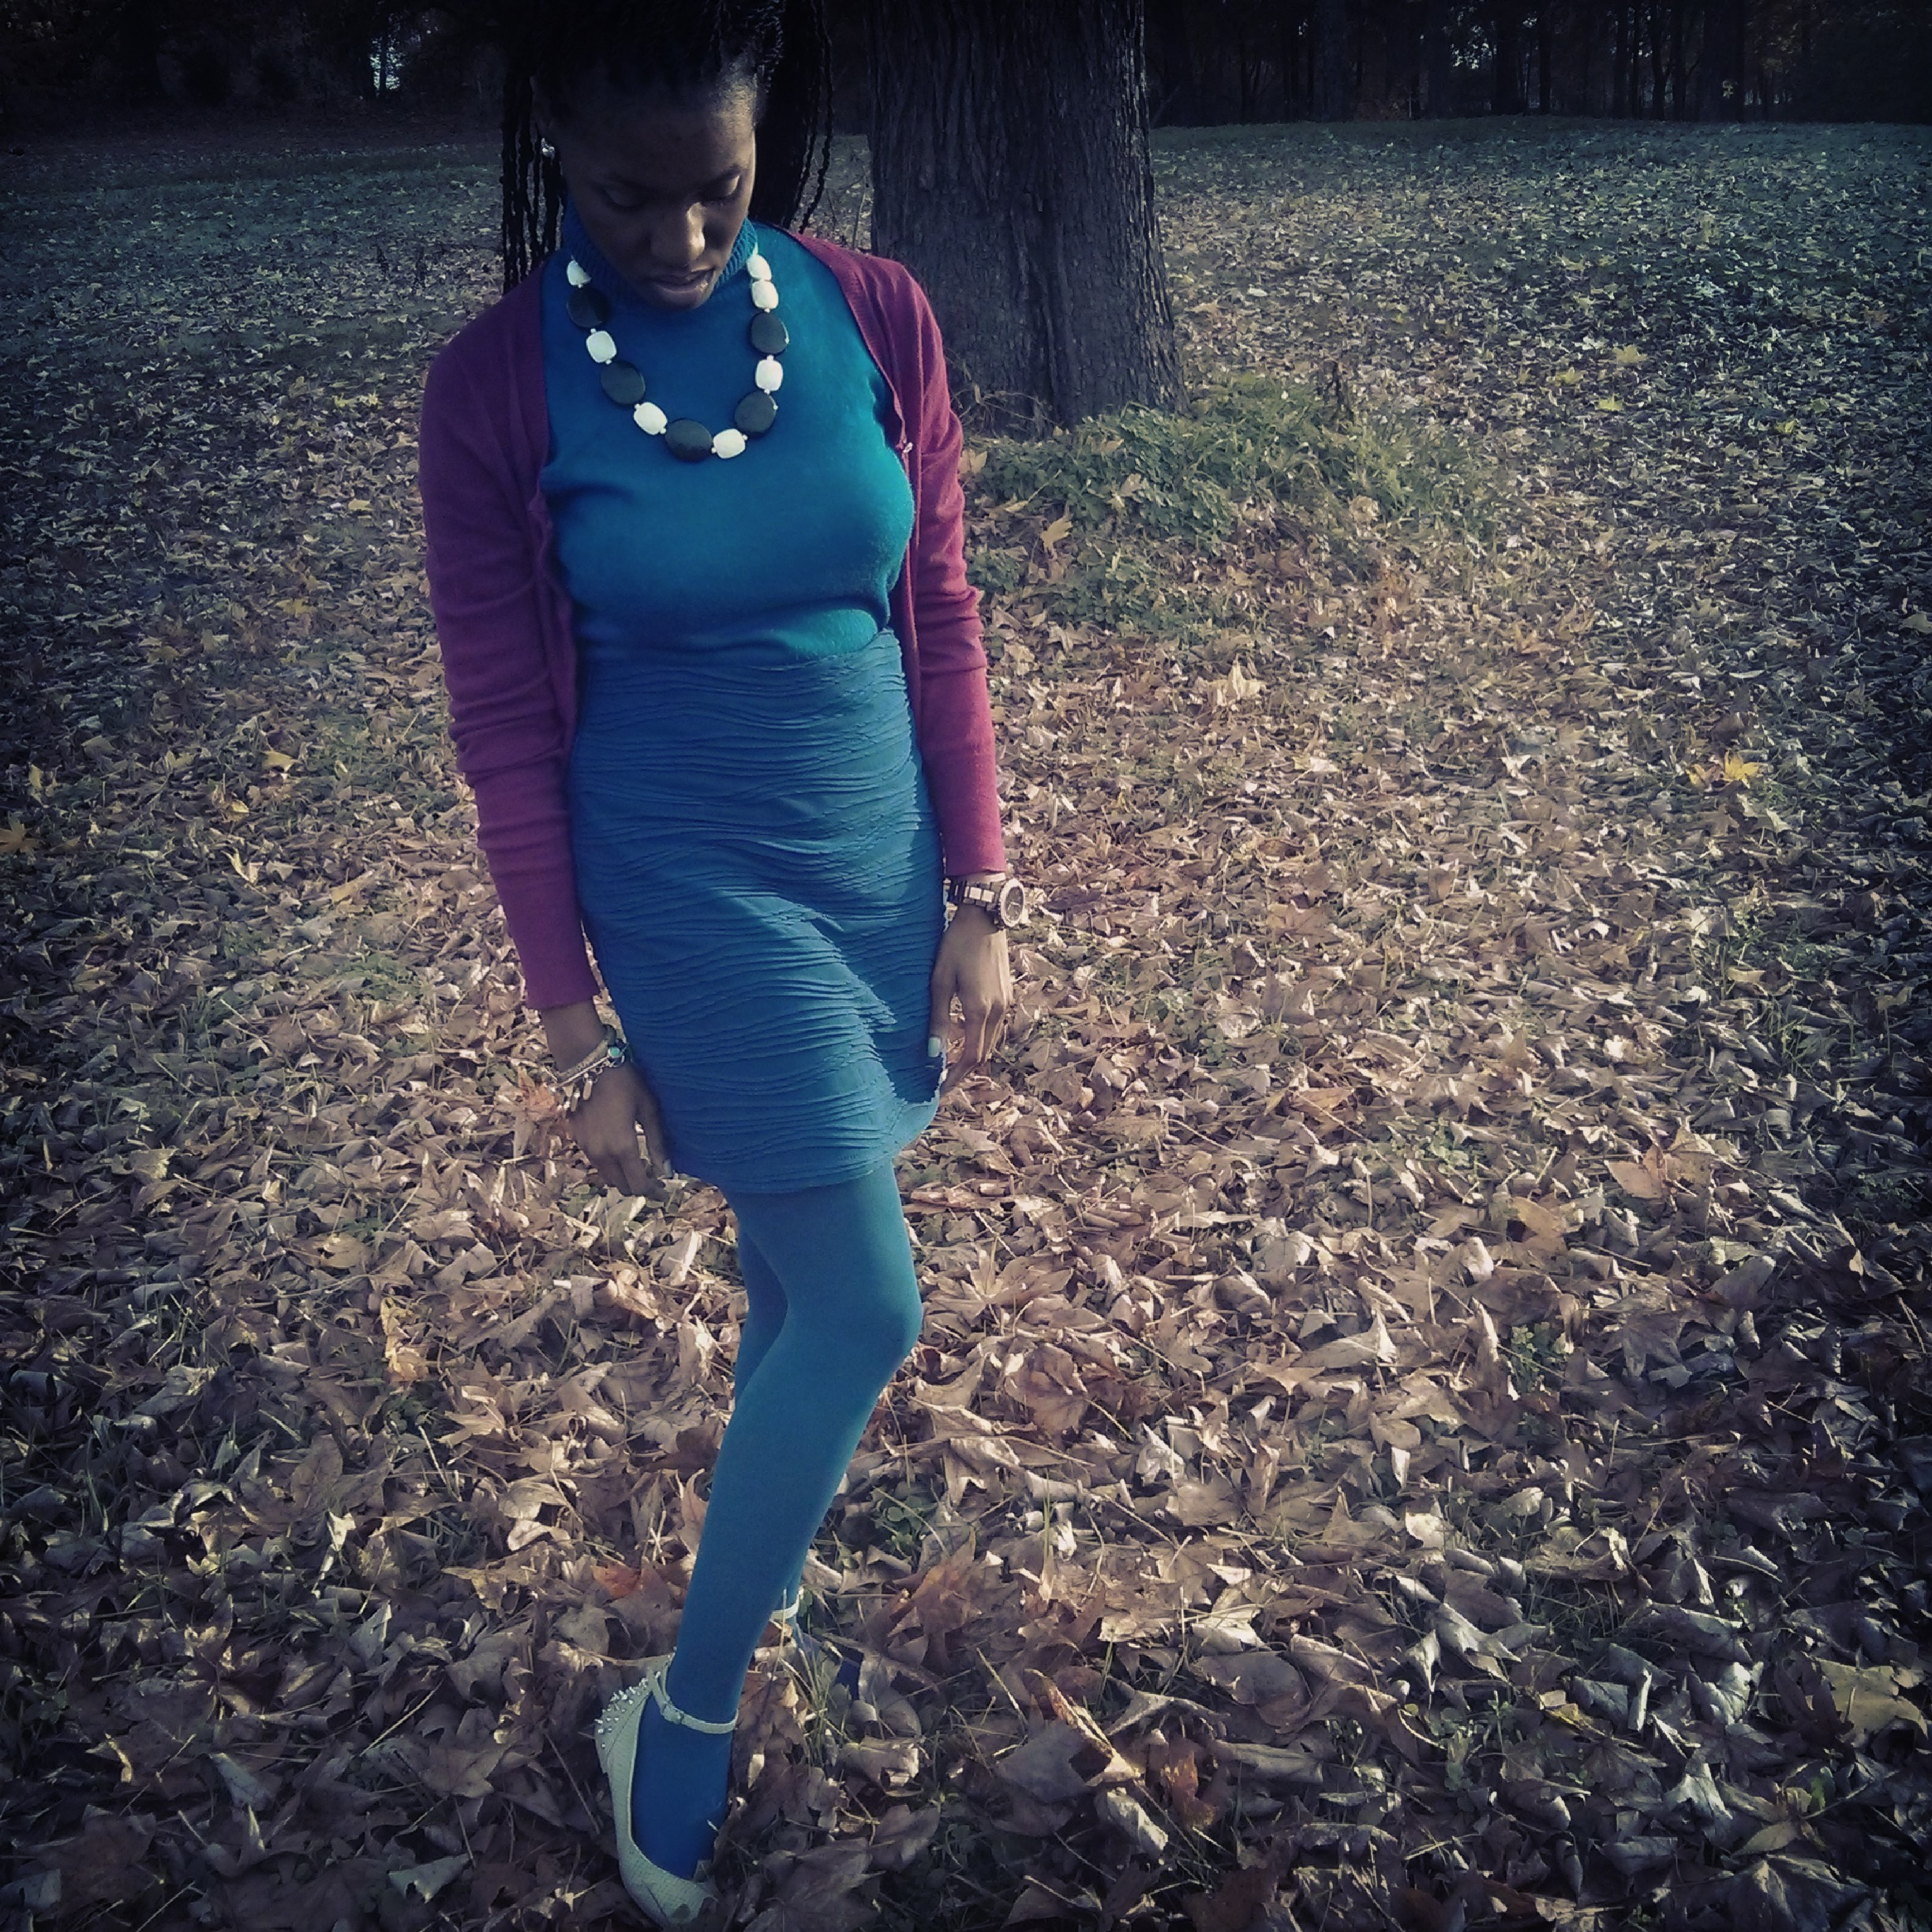 shirt: vintage; skirt: Forever21; tights: HUE; shoes: Bakers; cardigan: Express; necklace: thrifted